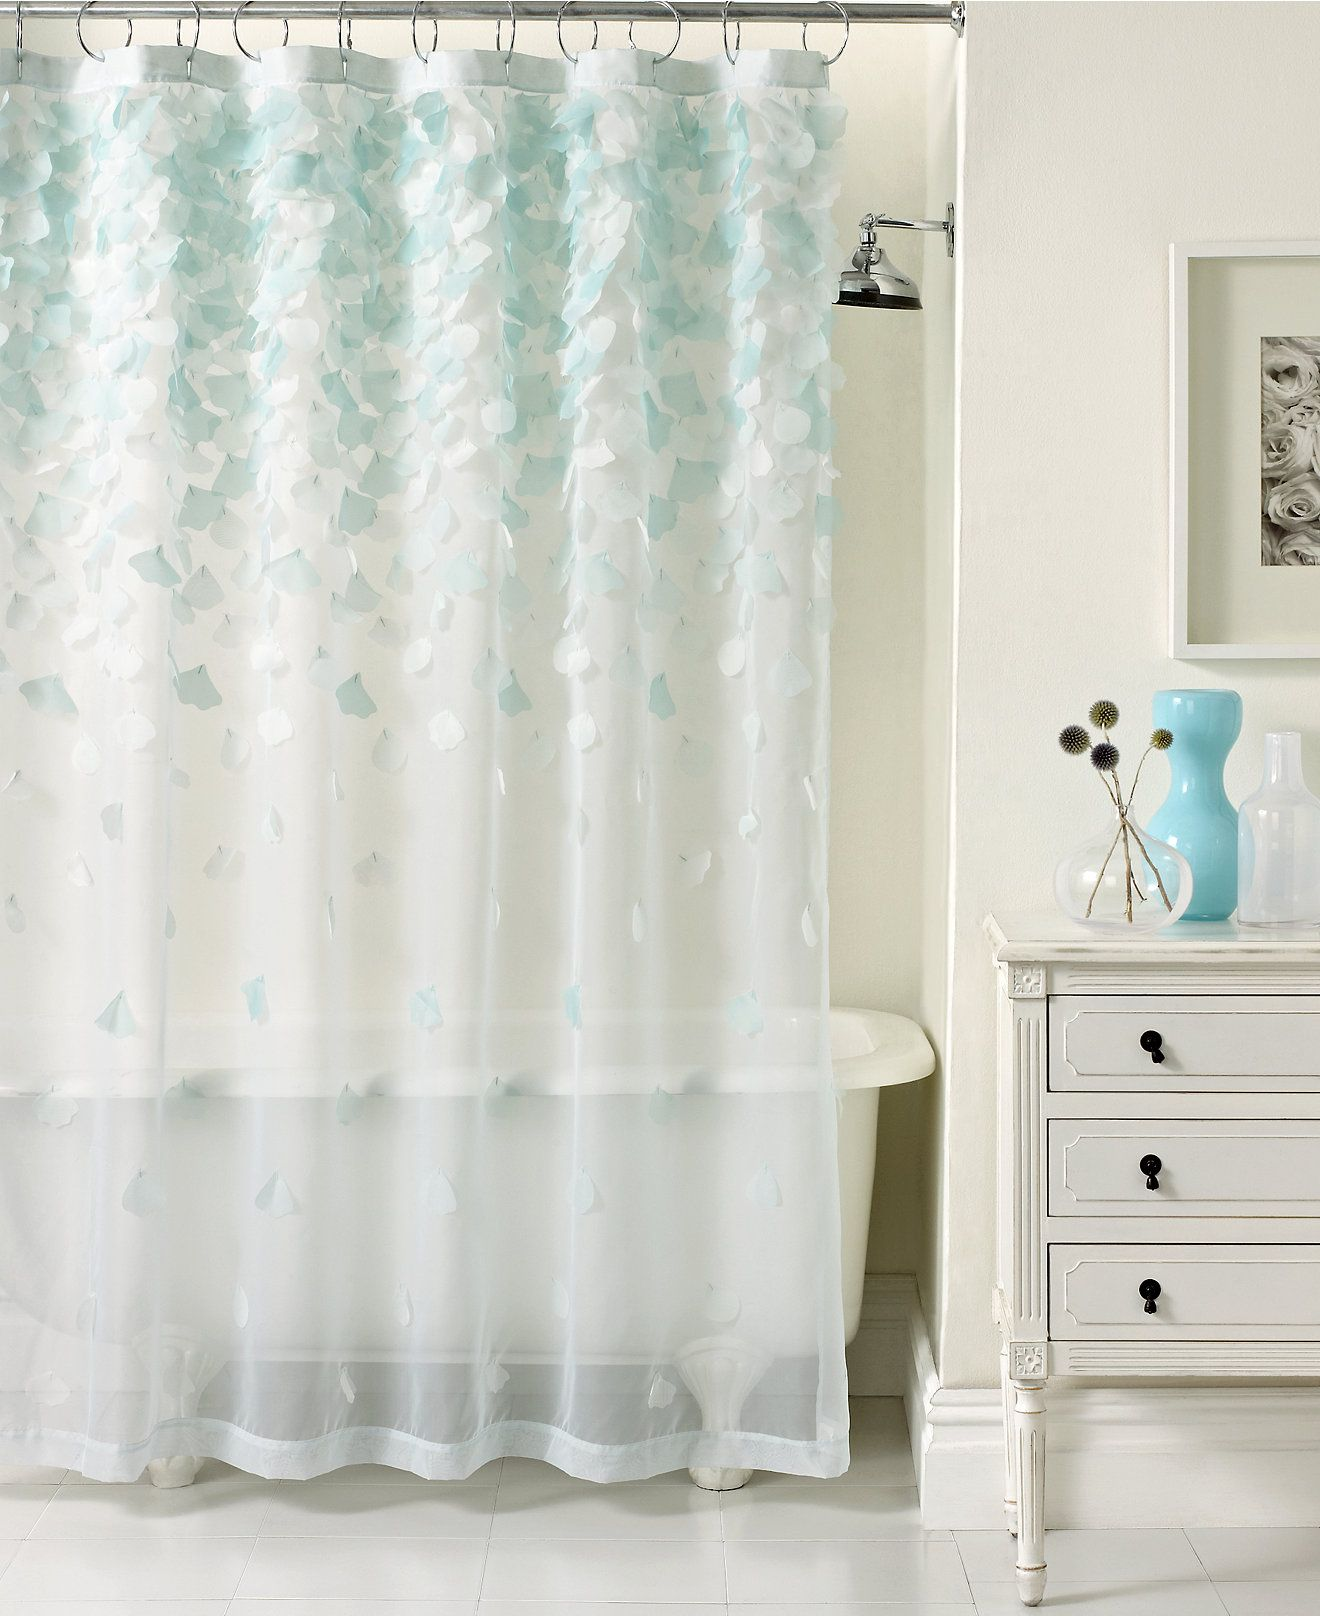 Awesome Martha Stewart Collection Falling Petals Shower Curtain. Curtain AccessoriesKid  BathroomsBeach ...